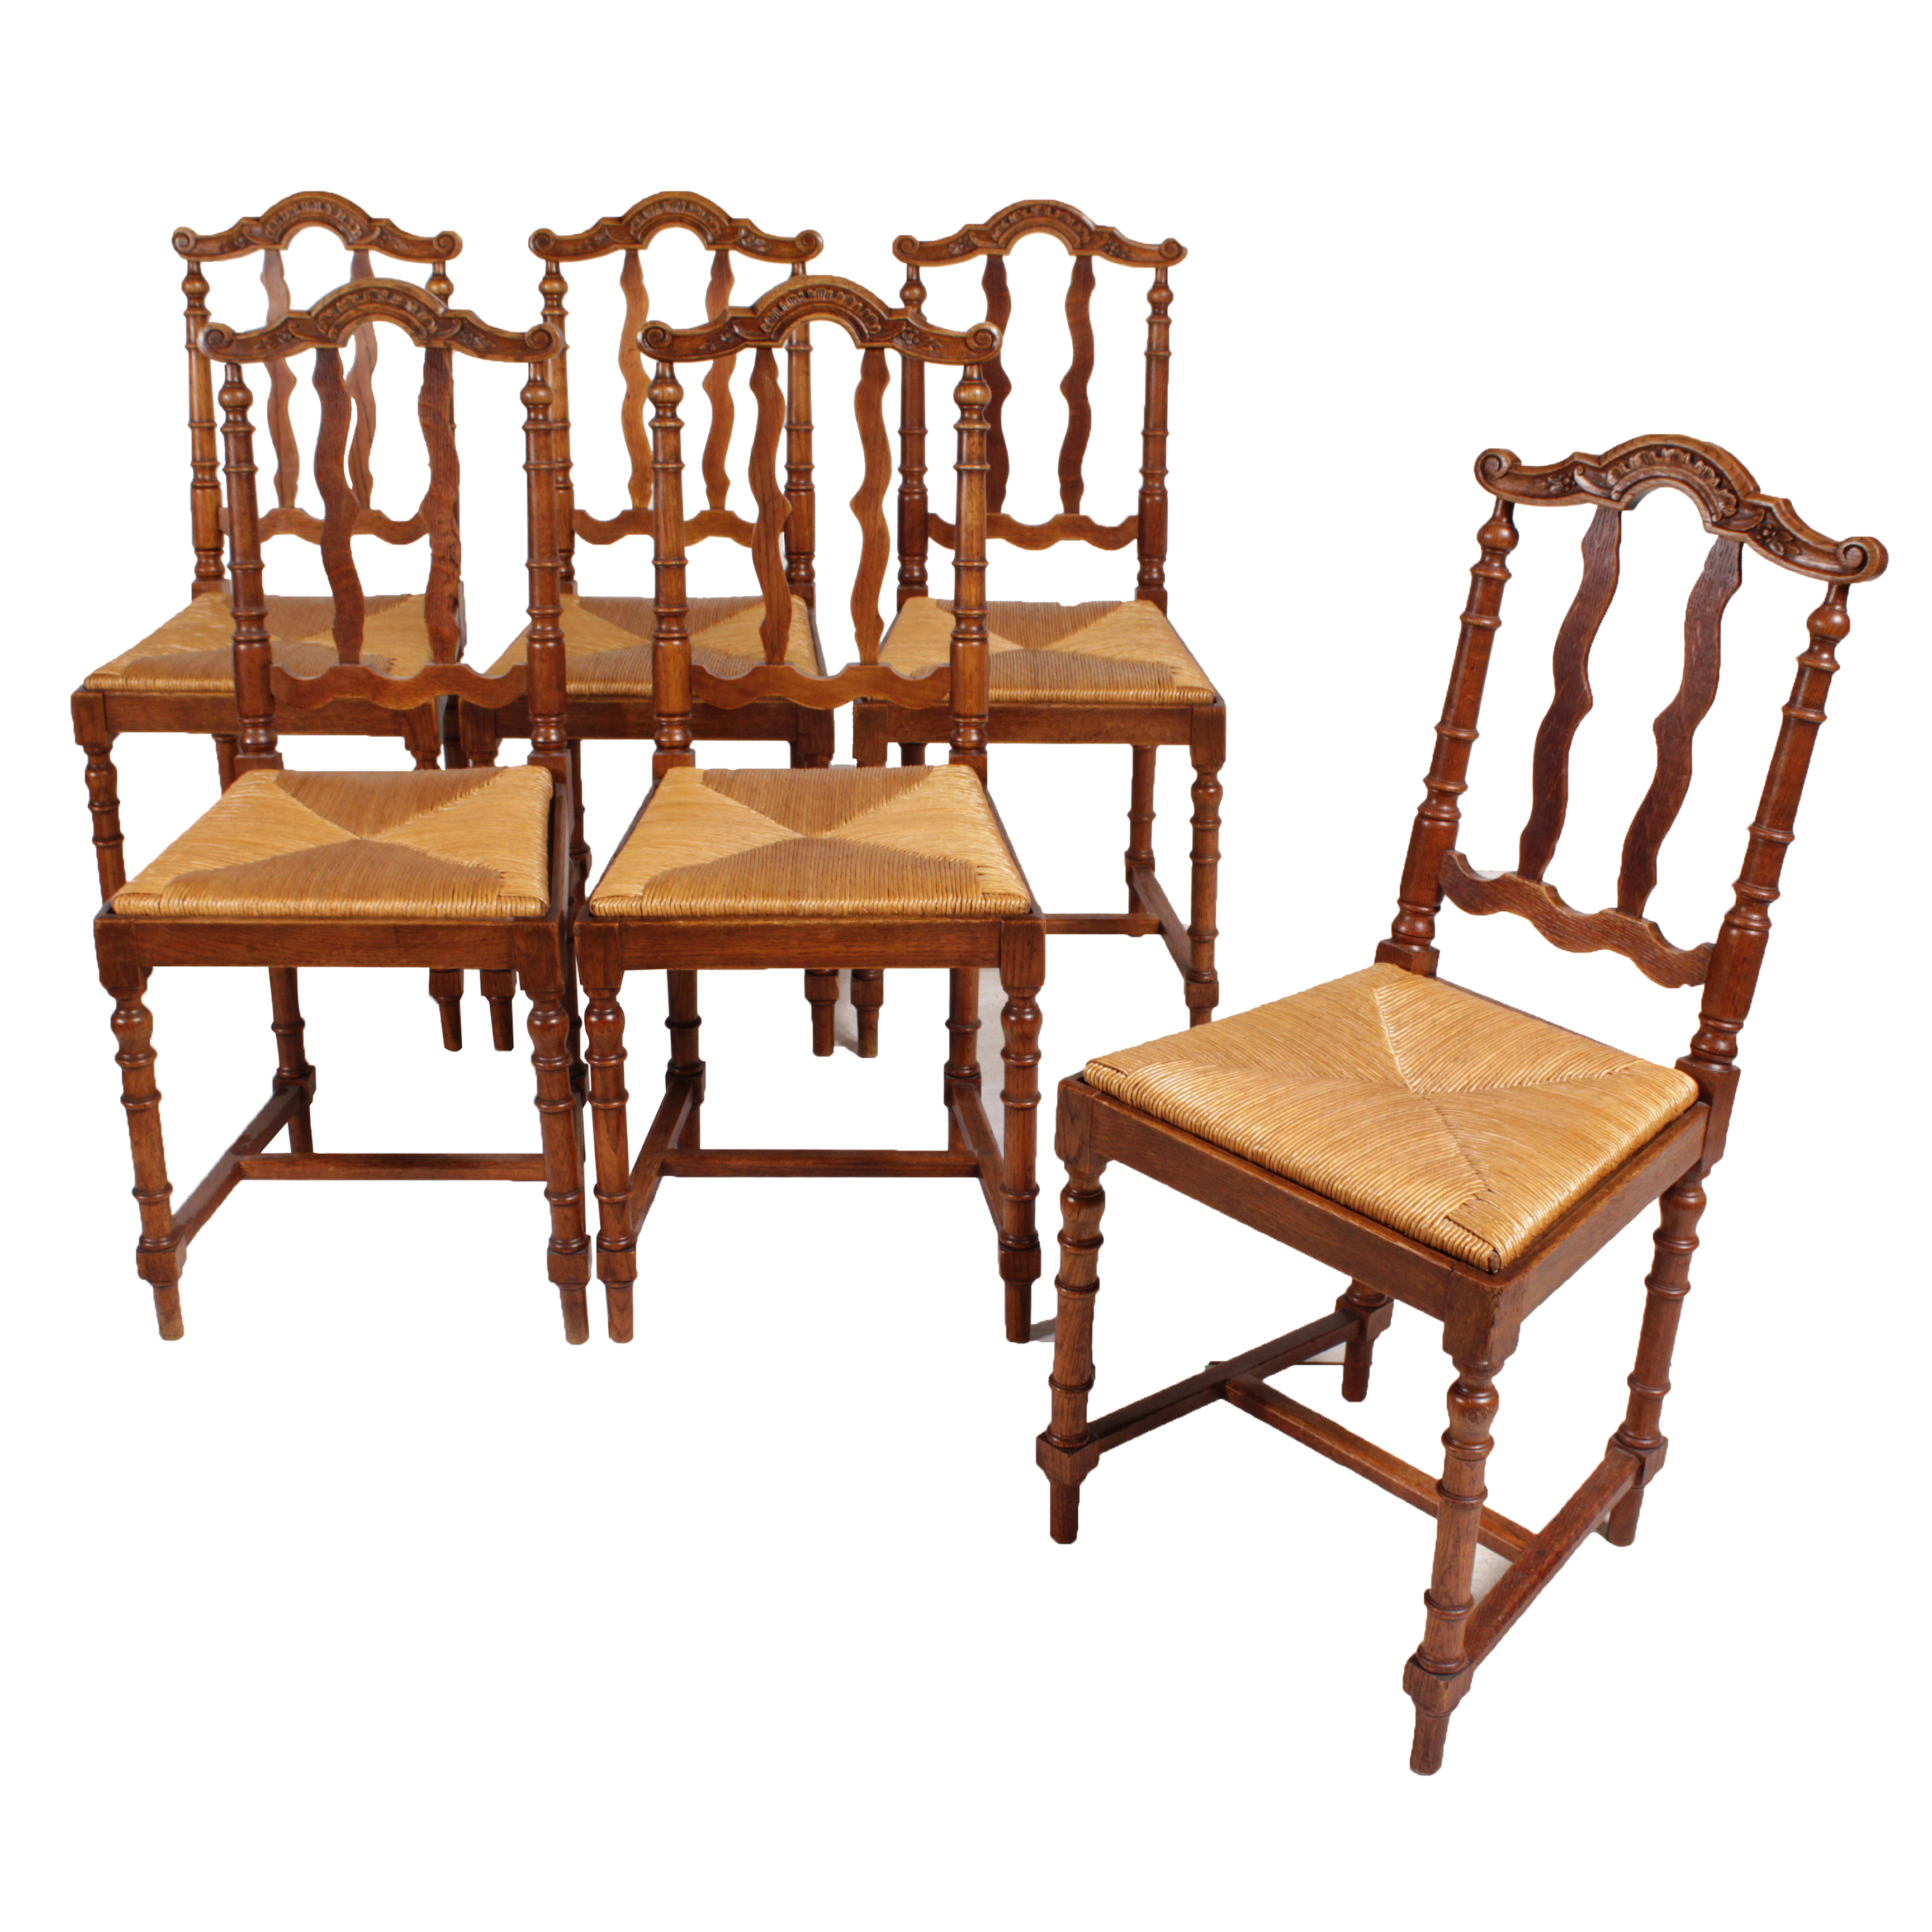 Flemish baroque style dining chairs set of 6 chairish for Baroque style dining chairs